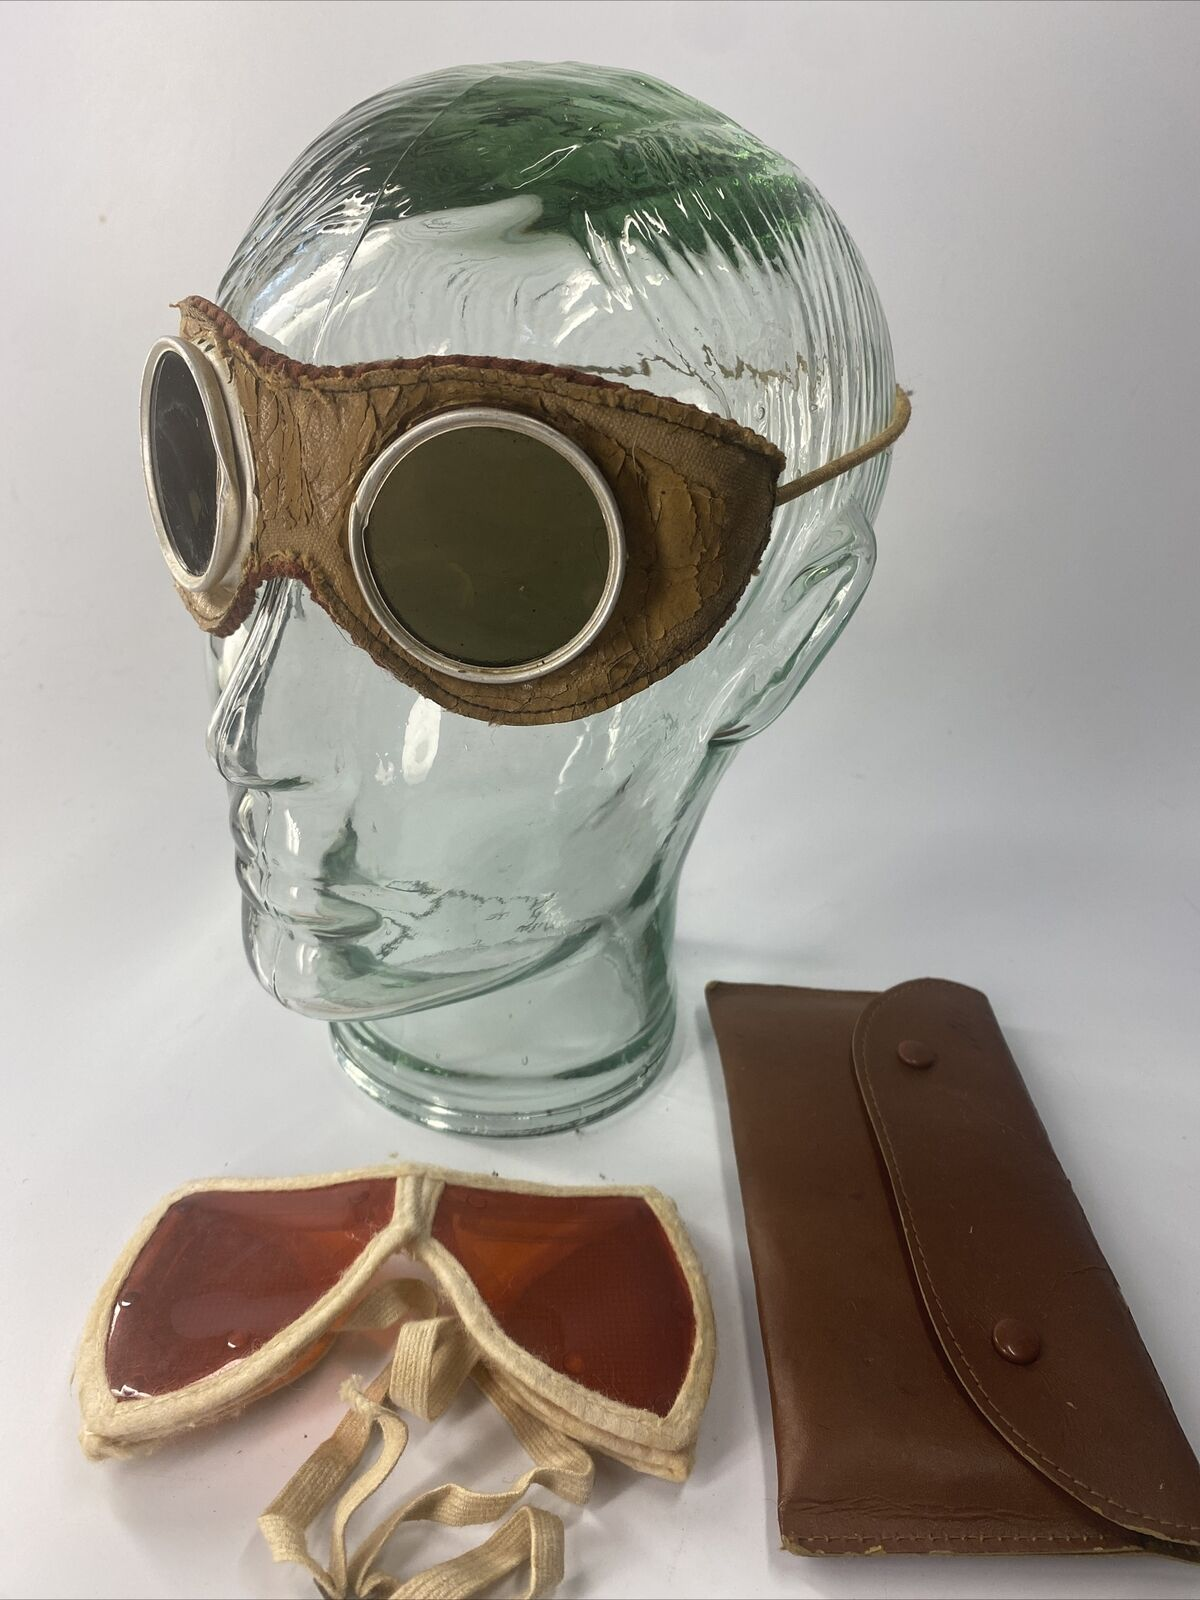 2 Cosplay Steam Punk Costume Vintage Antique Goggles Safety Glasses